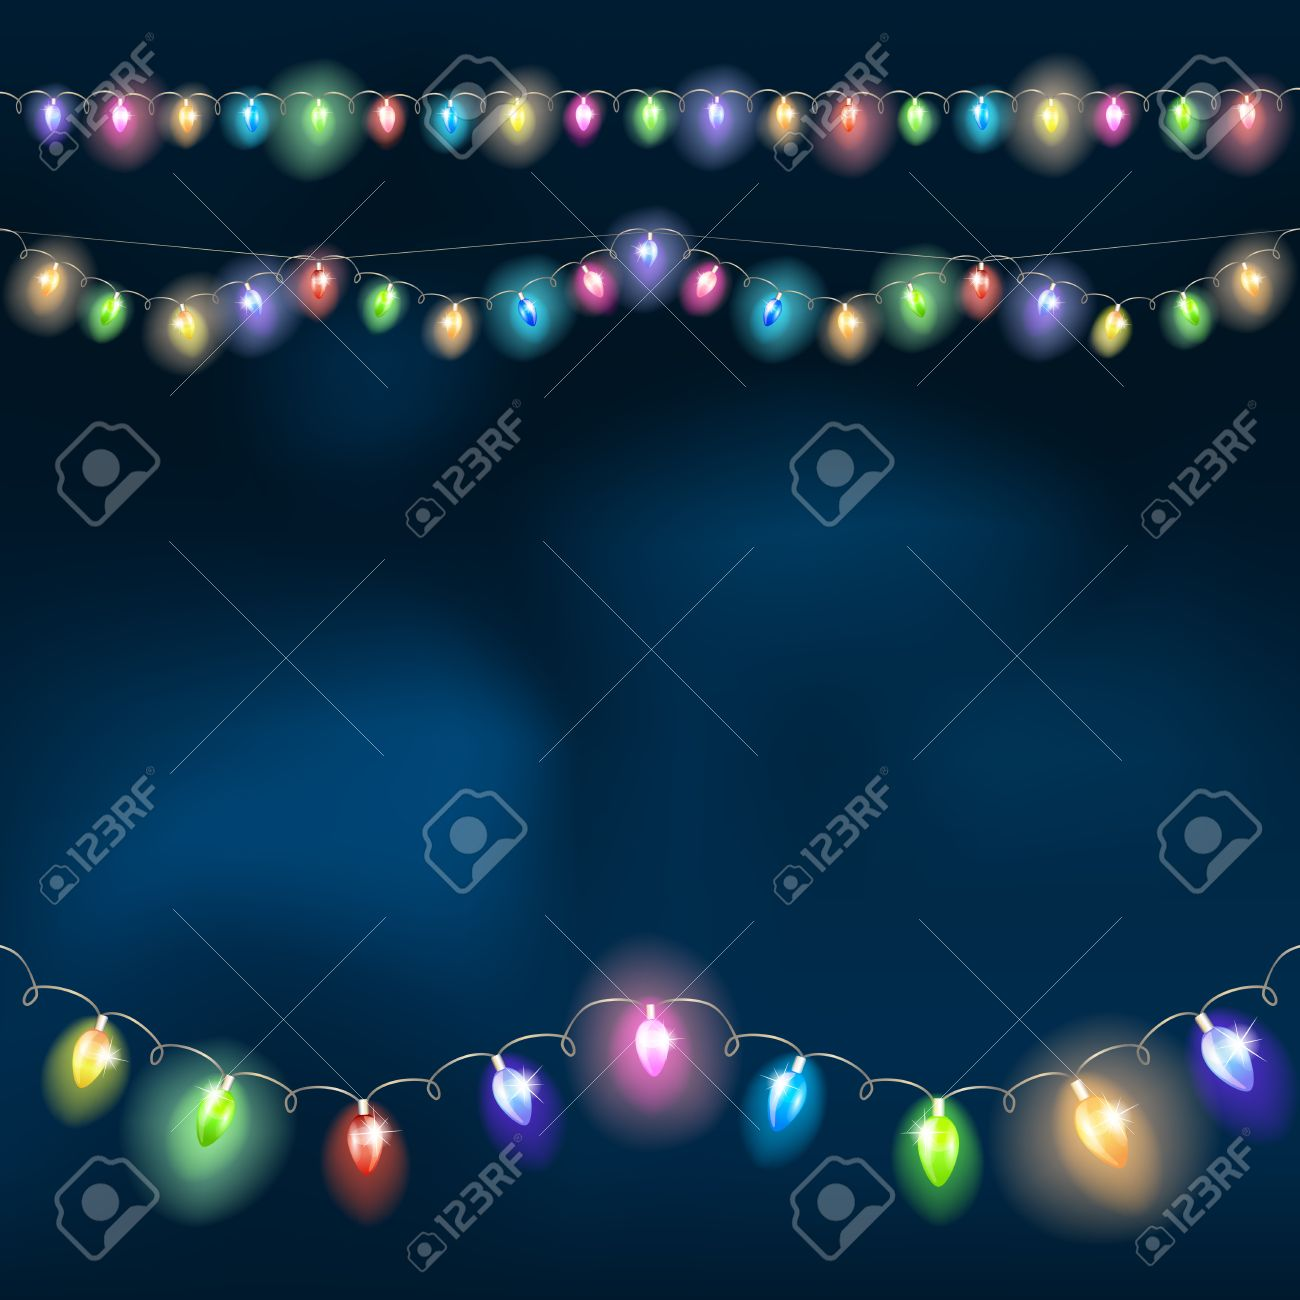 http://previews.123rf.com/images/margogl/margogl1511/margogl151100165/47882272-Christmas-light-garland-on-the-night-sky-Vector-illustration--Stock-Vector.jpg